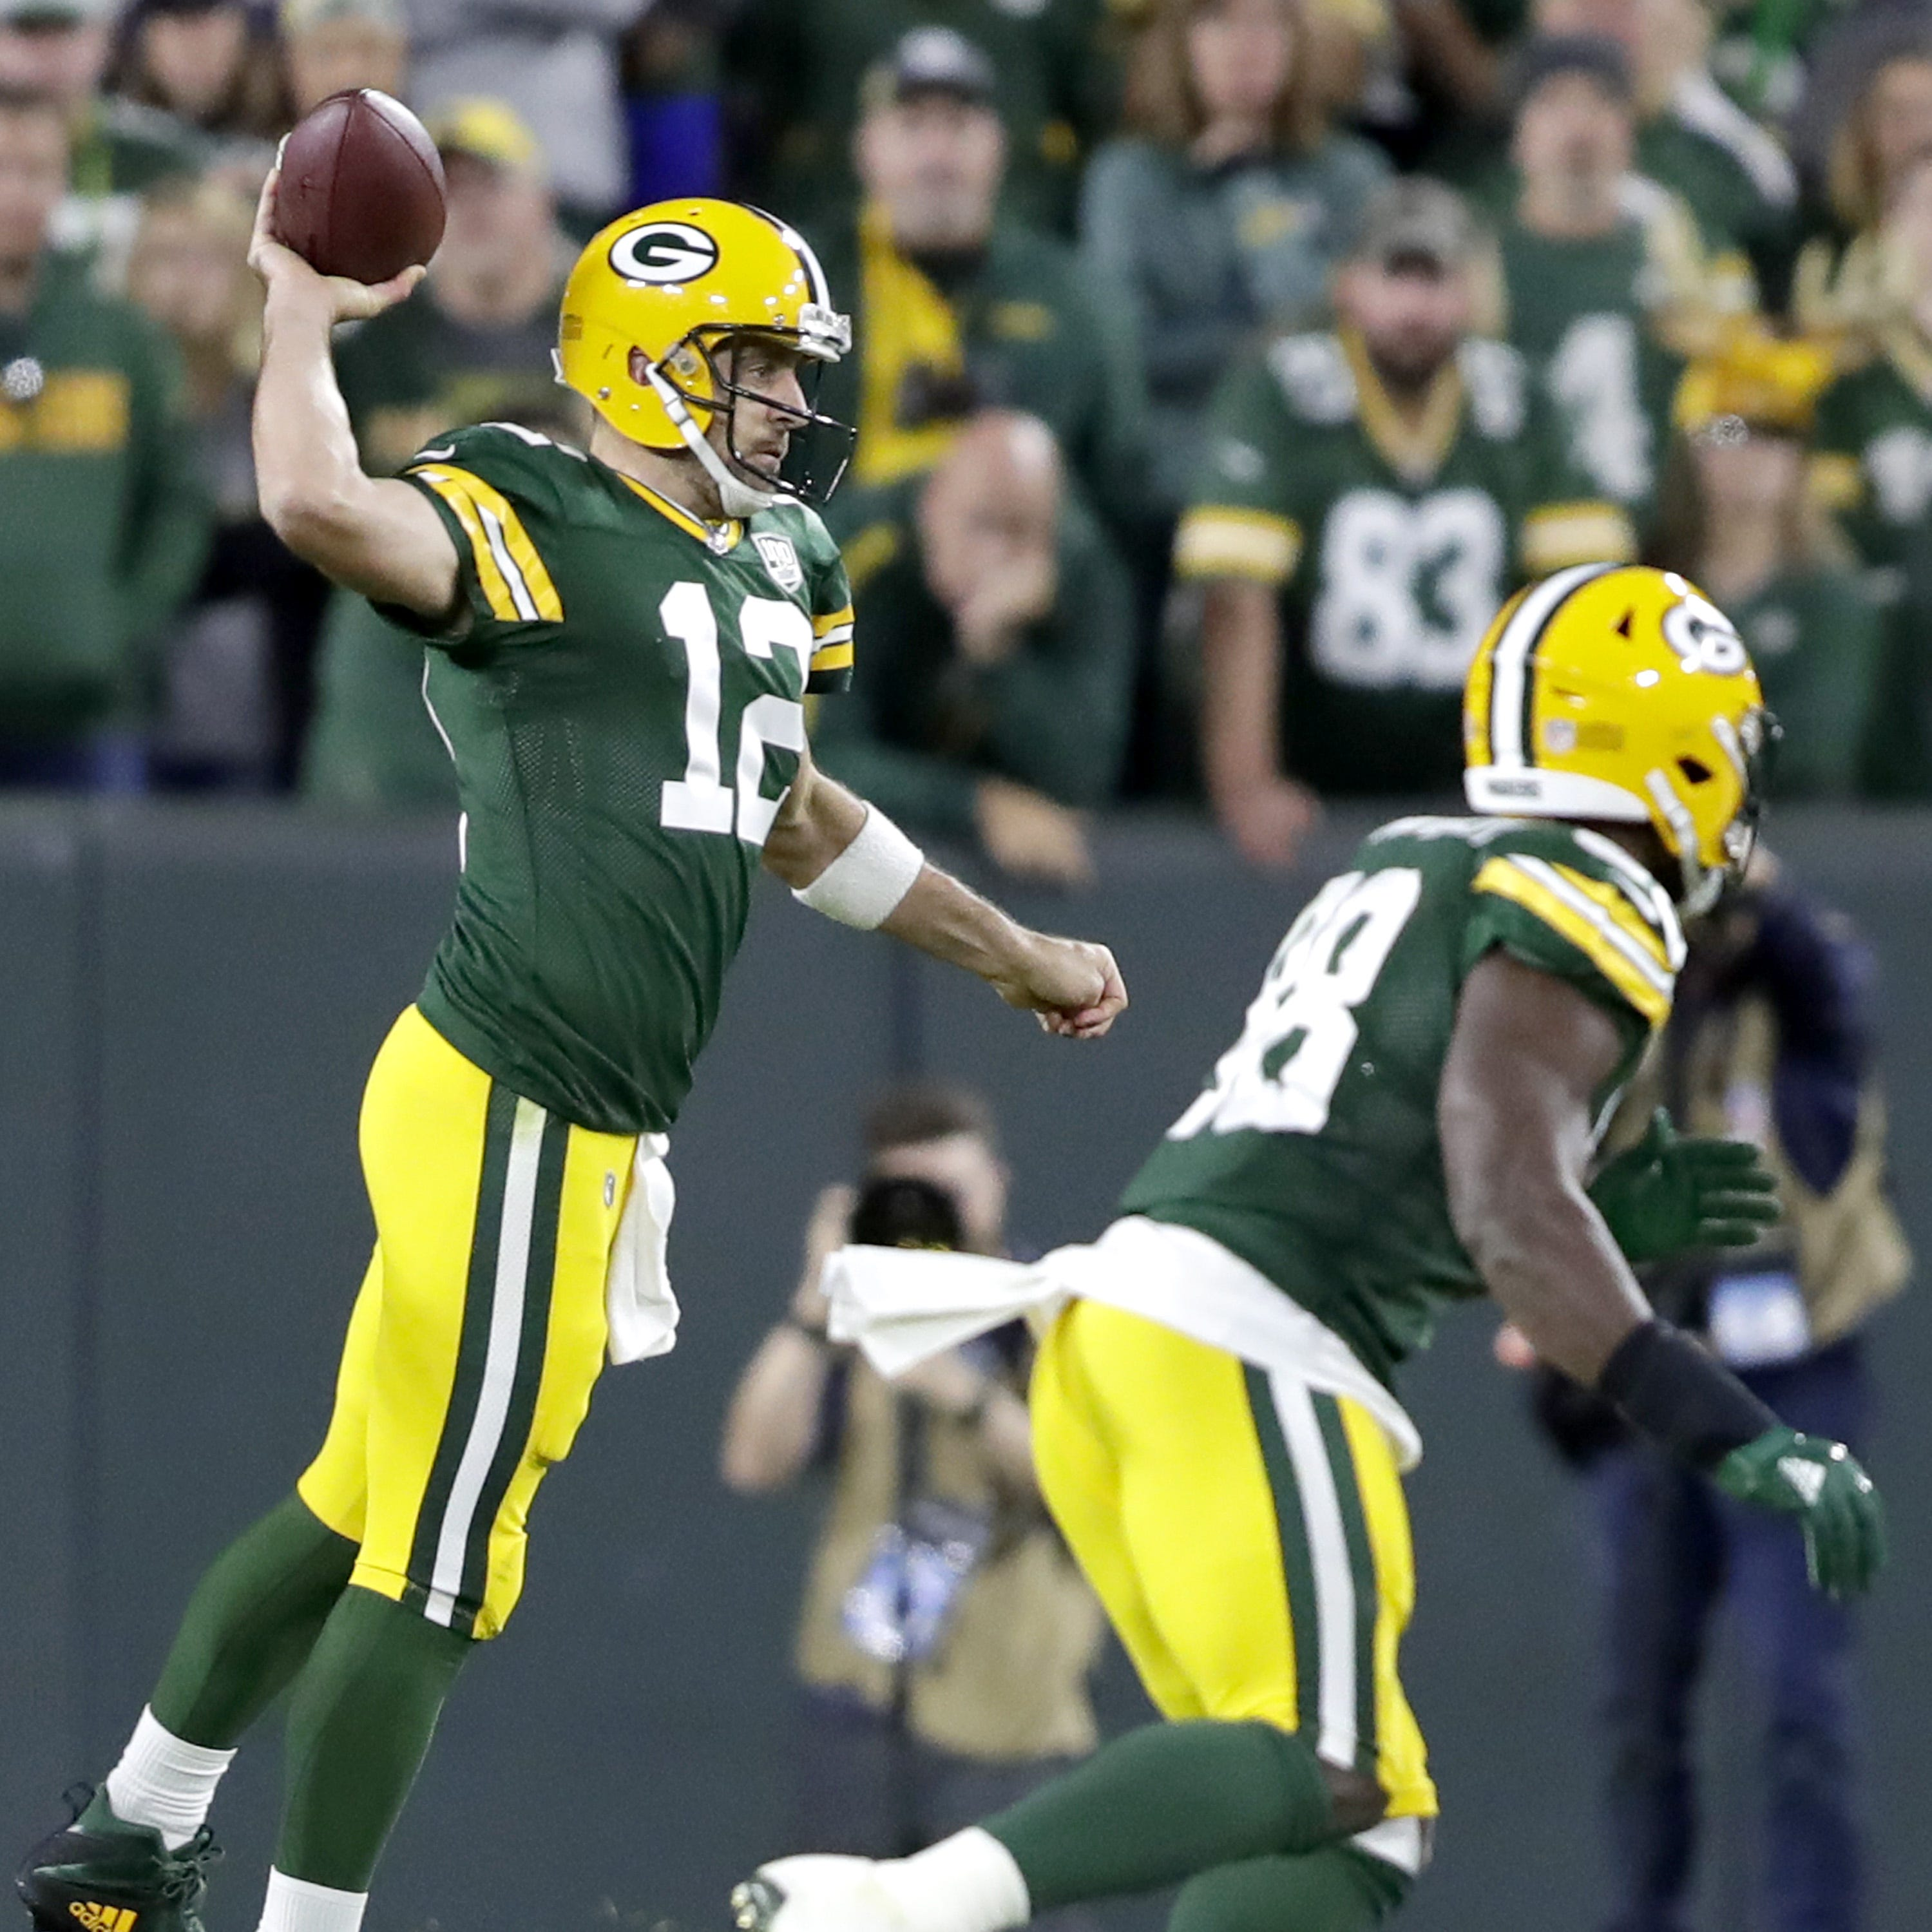 Quick thinking could be key to Packers duplicating Week 1 win over Bears